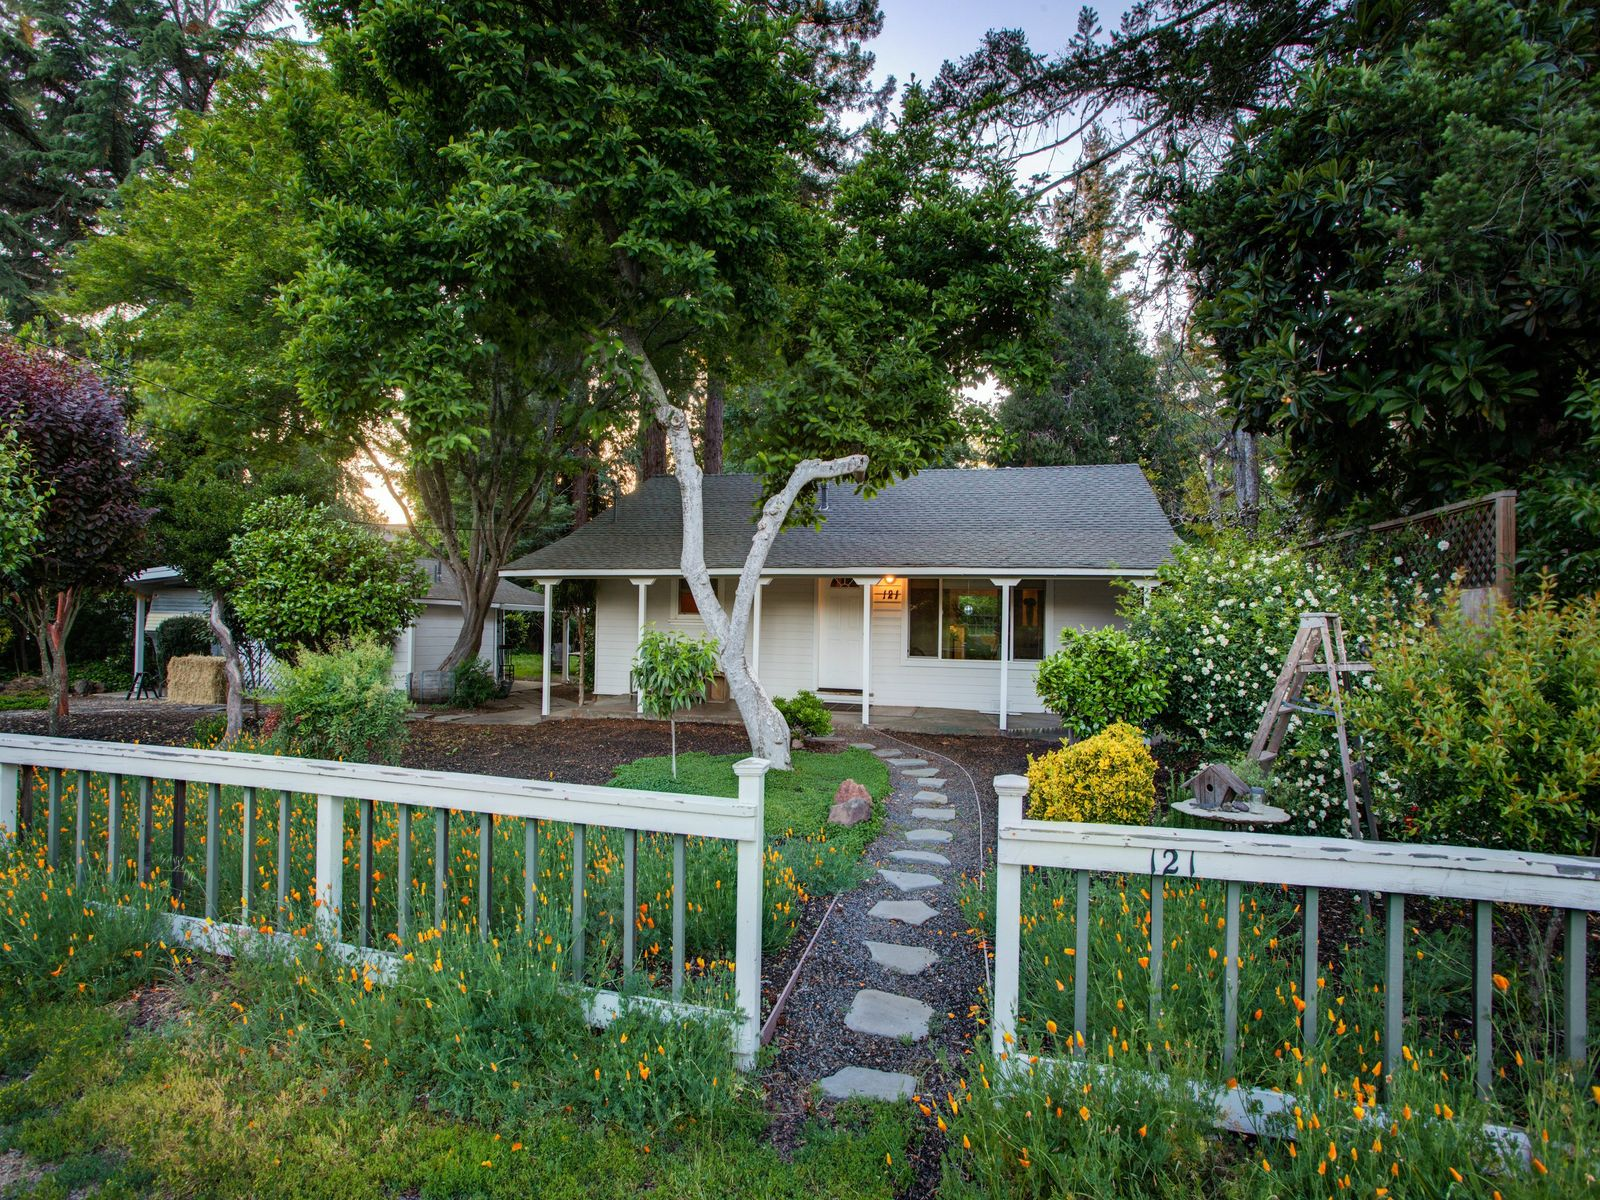 1950's Kenwood Farmhouse, Kenwood CA Single Family Home - Sonoma - Napa Real Estate